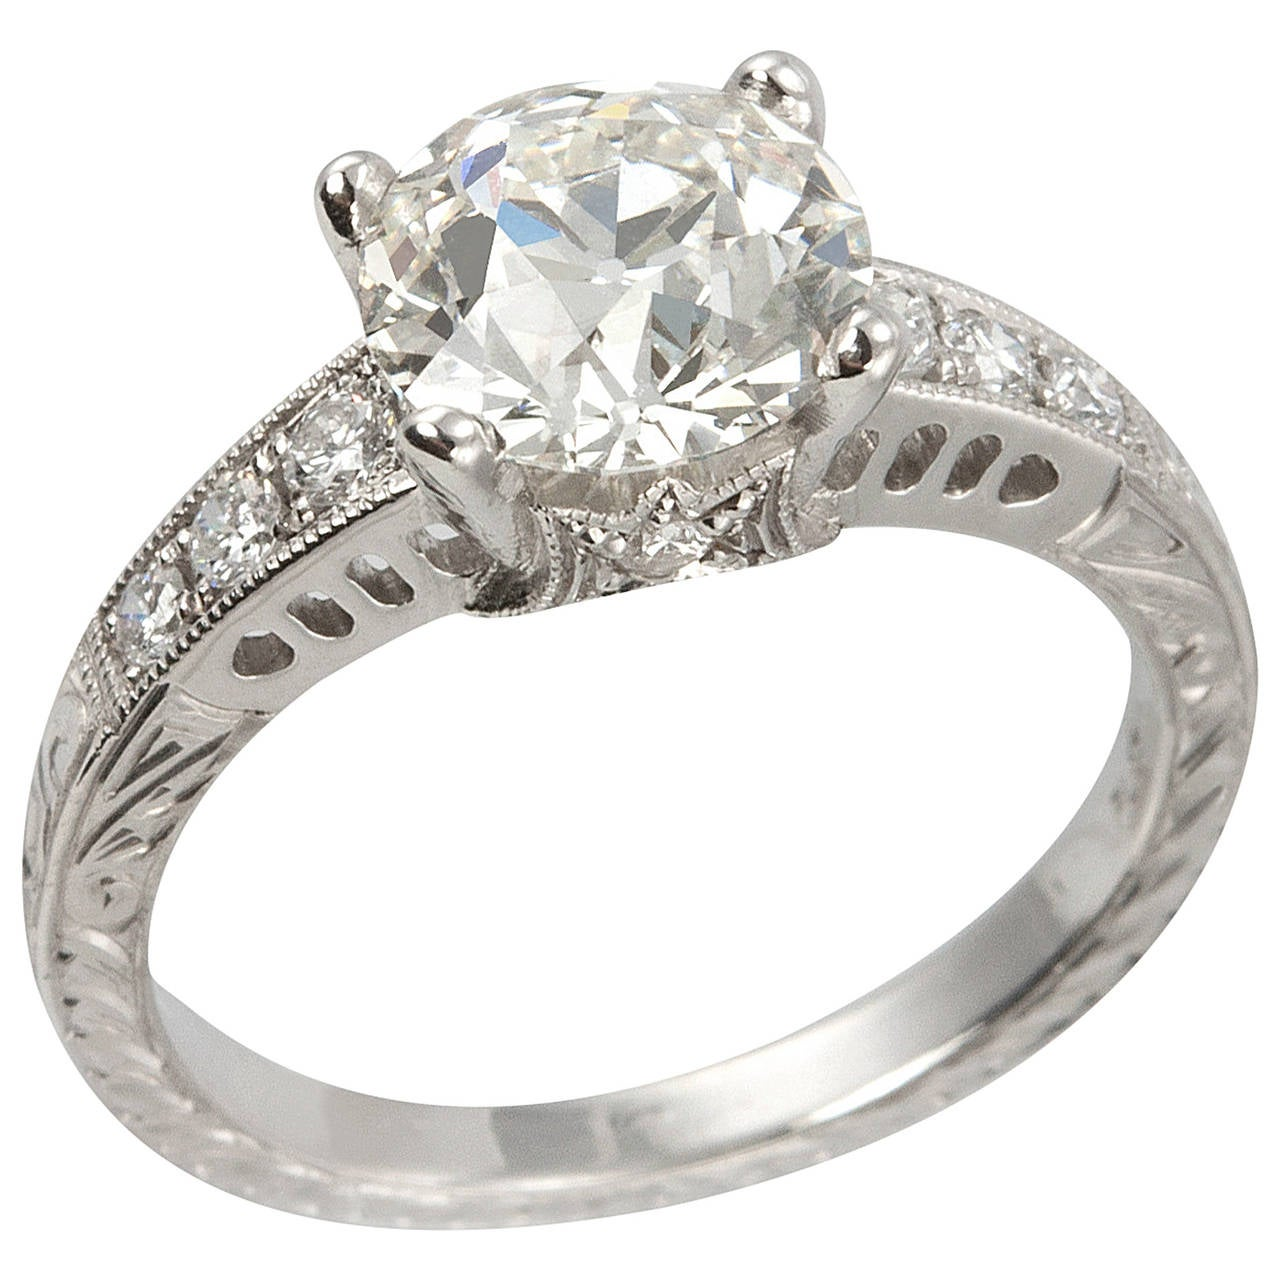 1.91 Carat Old European Cut Diamond Platinum Engagement Ring 1